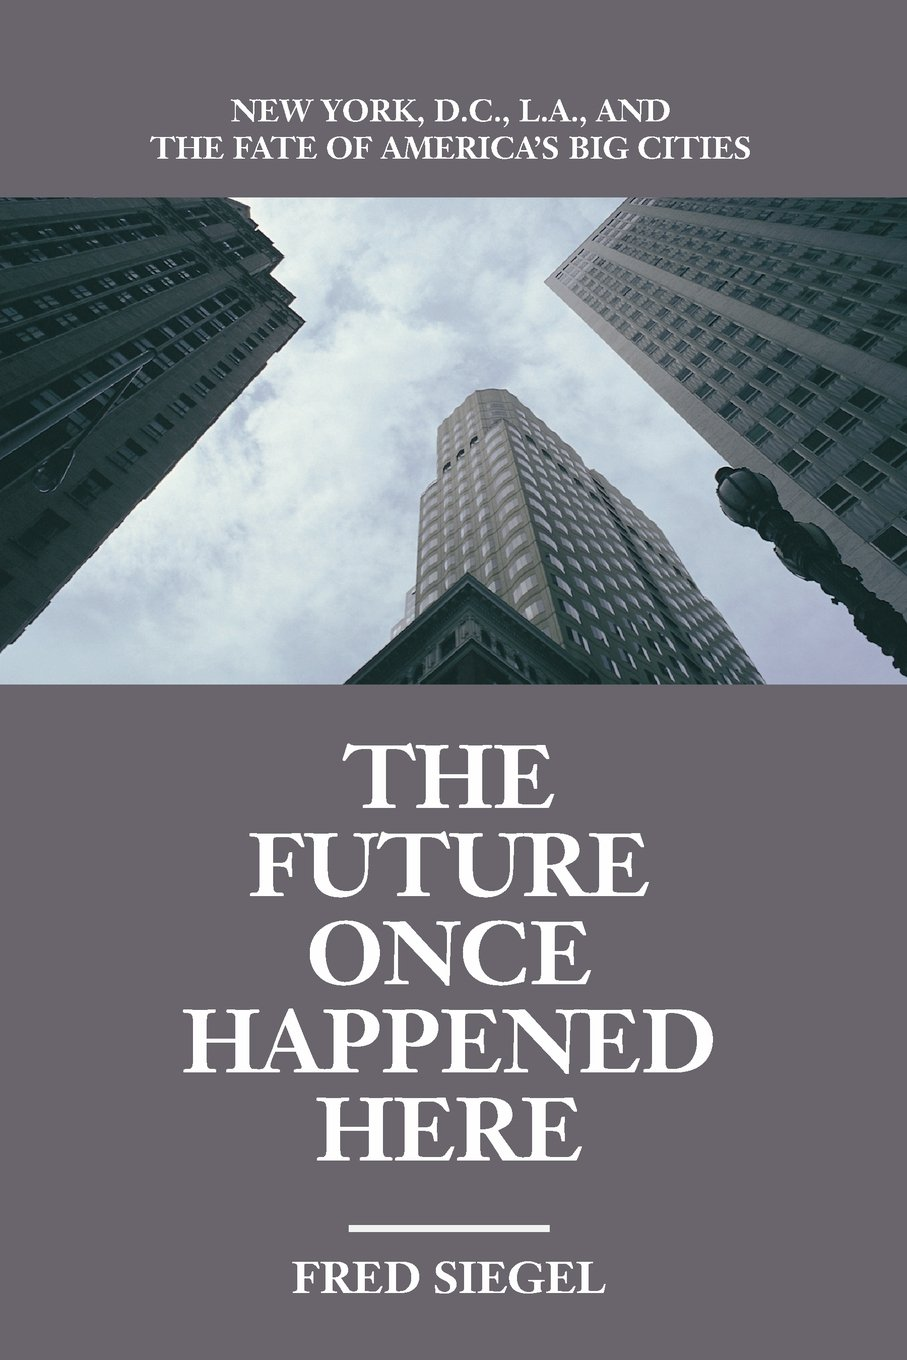 The Future Once Happened Here: New York, D.C., L.A., and the Fate of America's Big Cities ebook